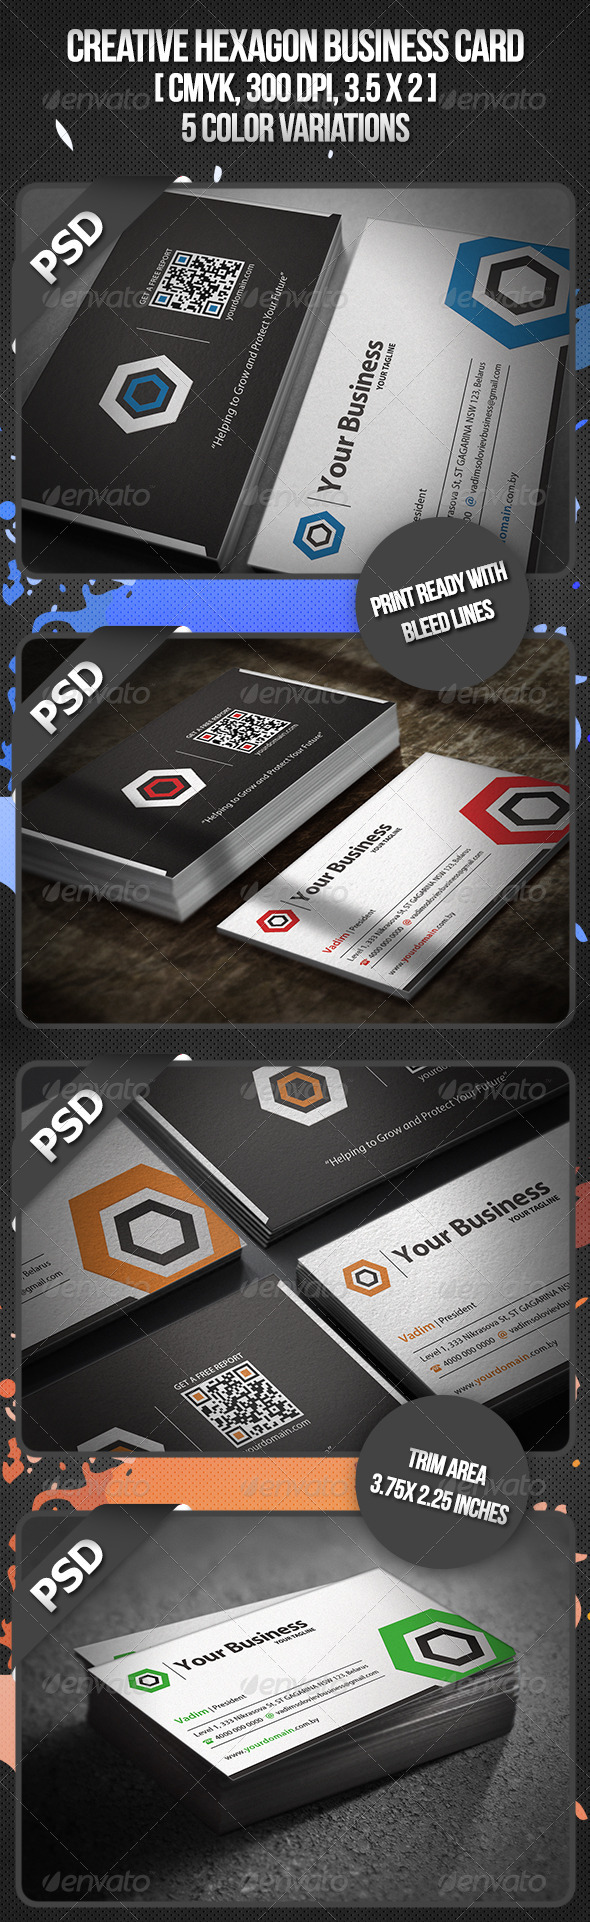 GraphicRiver Creative Hexagon Business Card 3320258